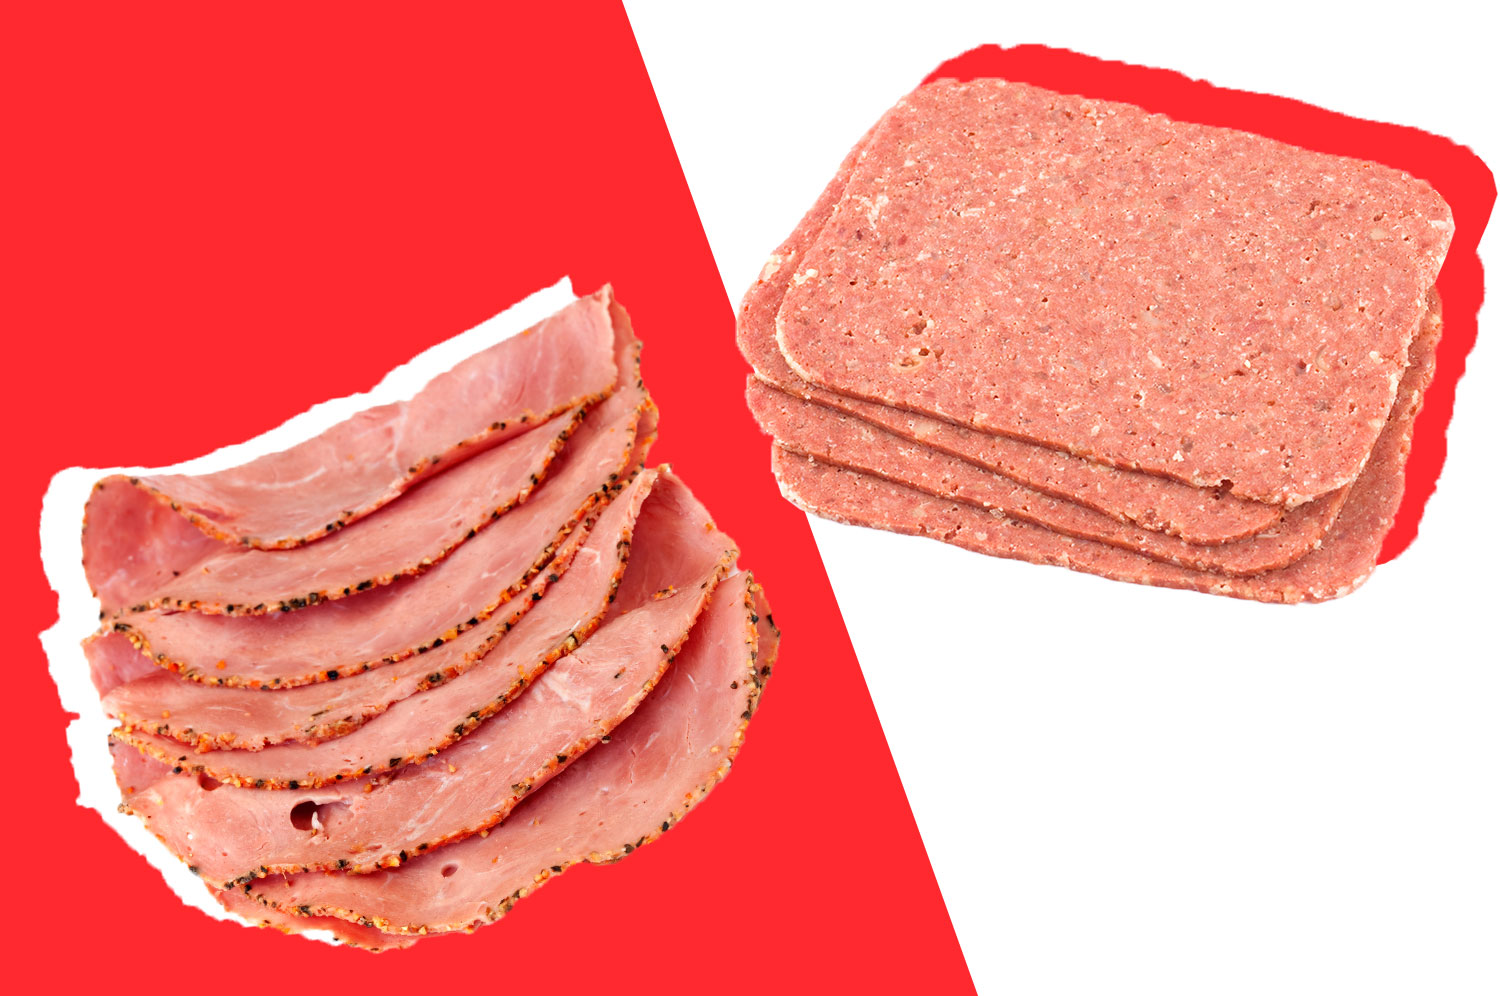 Corned beef and pastrami on a red and white background